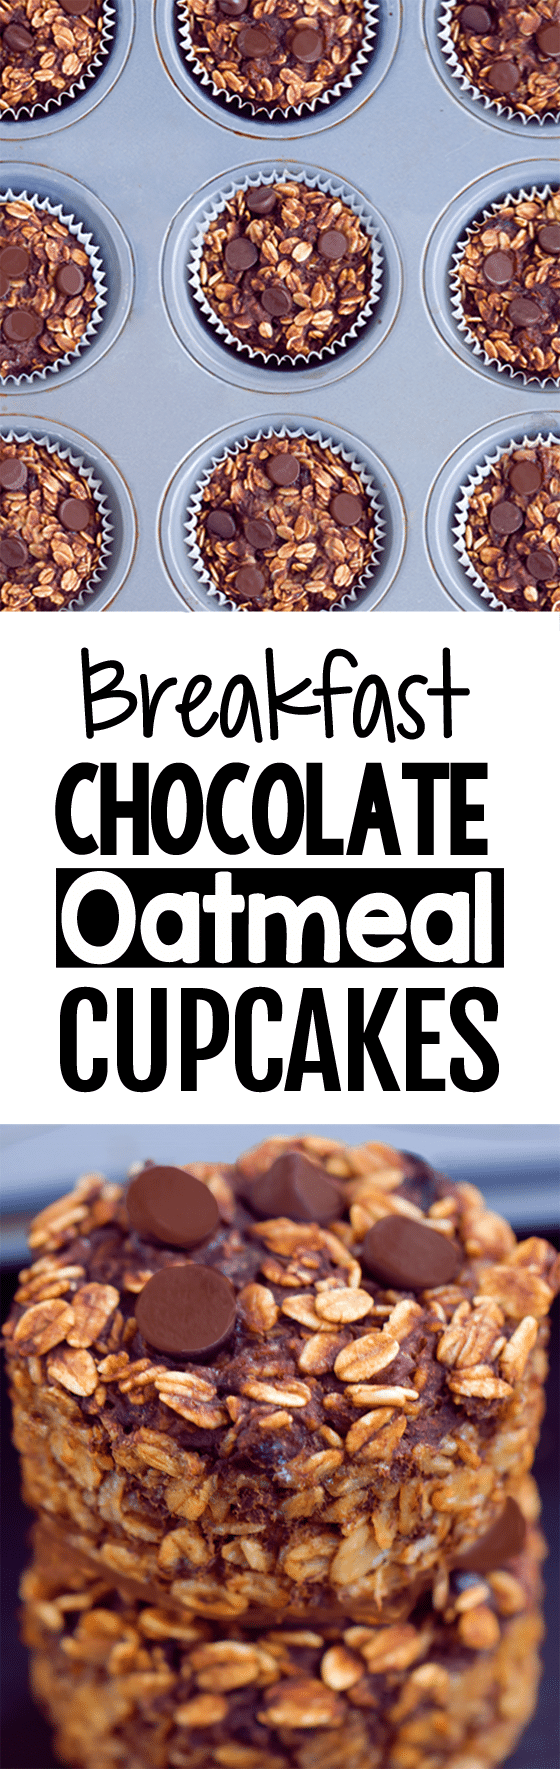 Meal Prep Breakfast Chocolate Oatmeal Cupcakes To Go Recipe